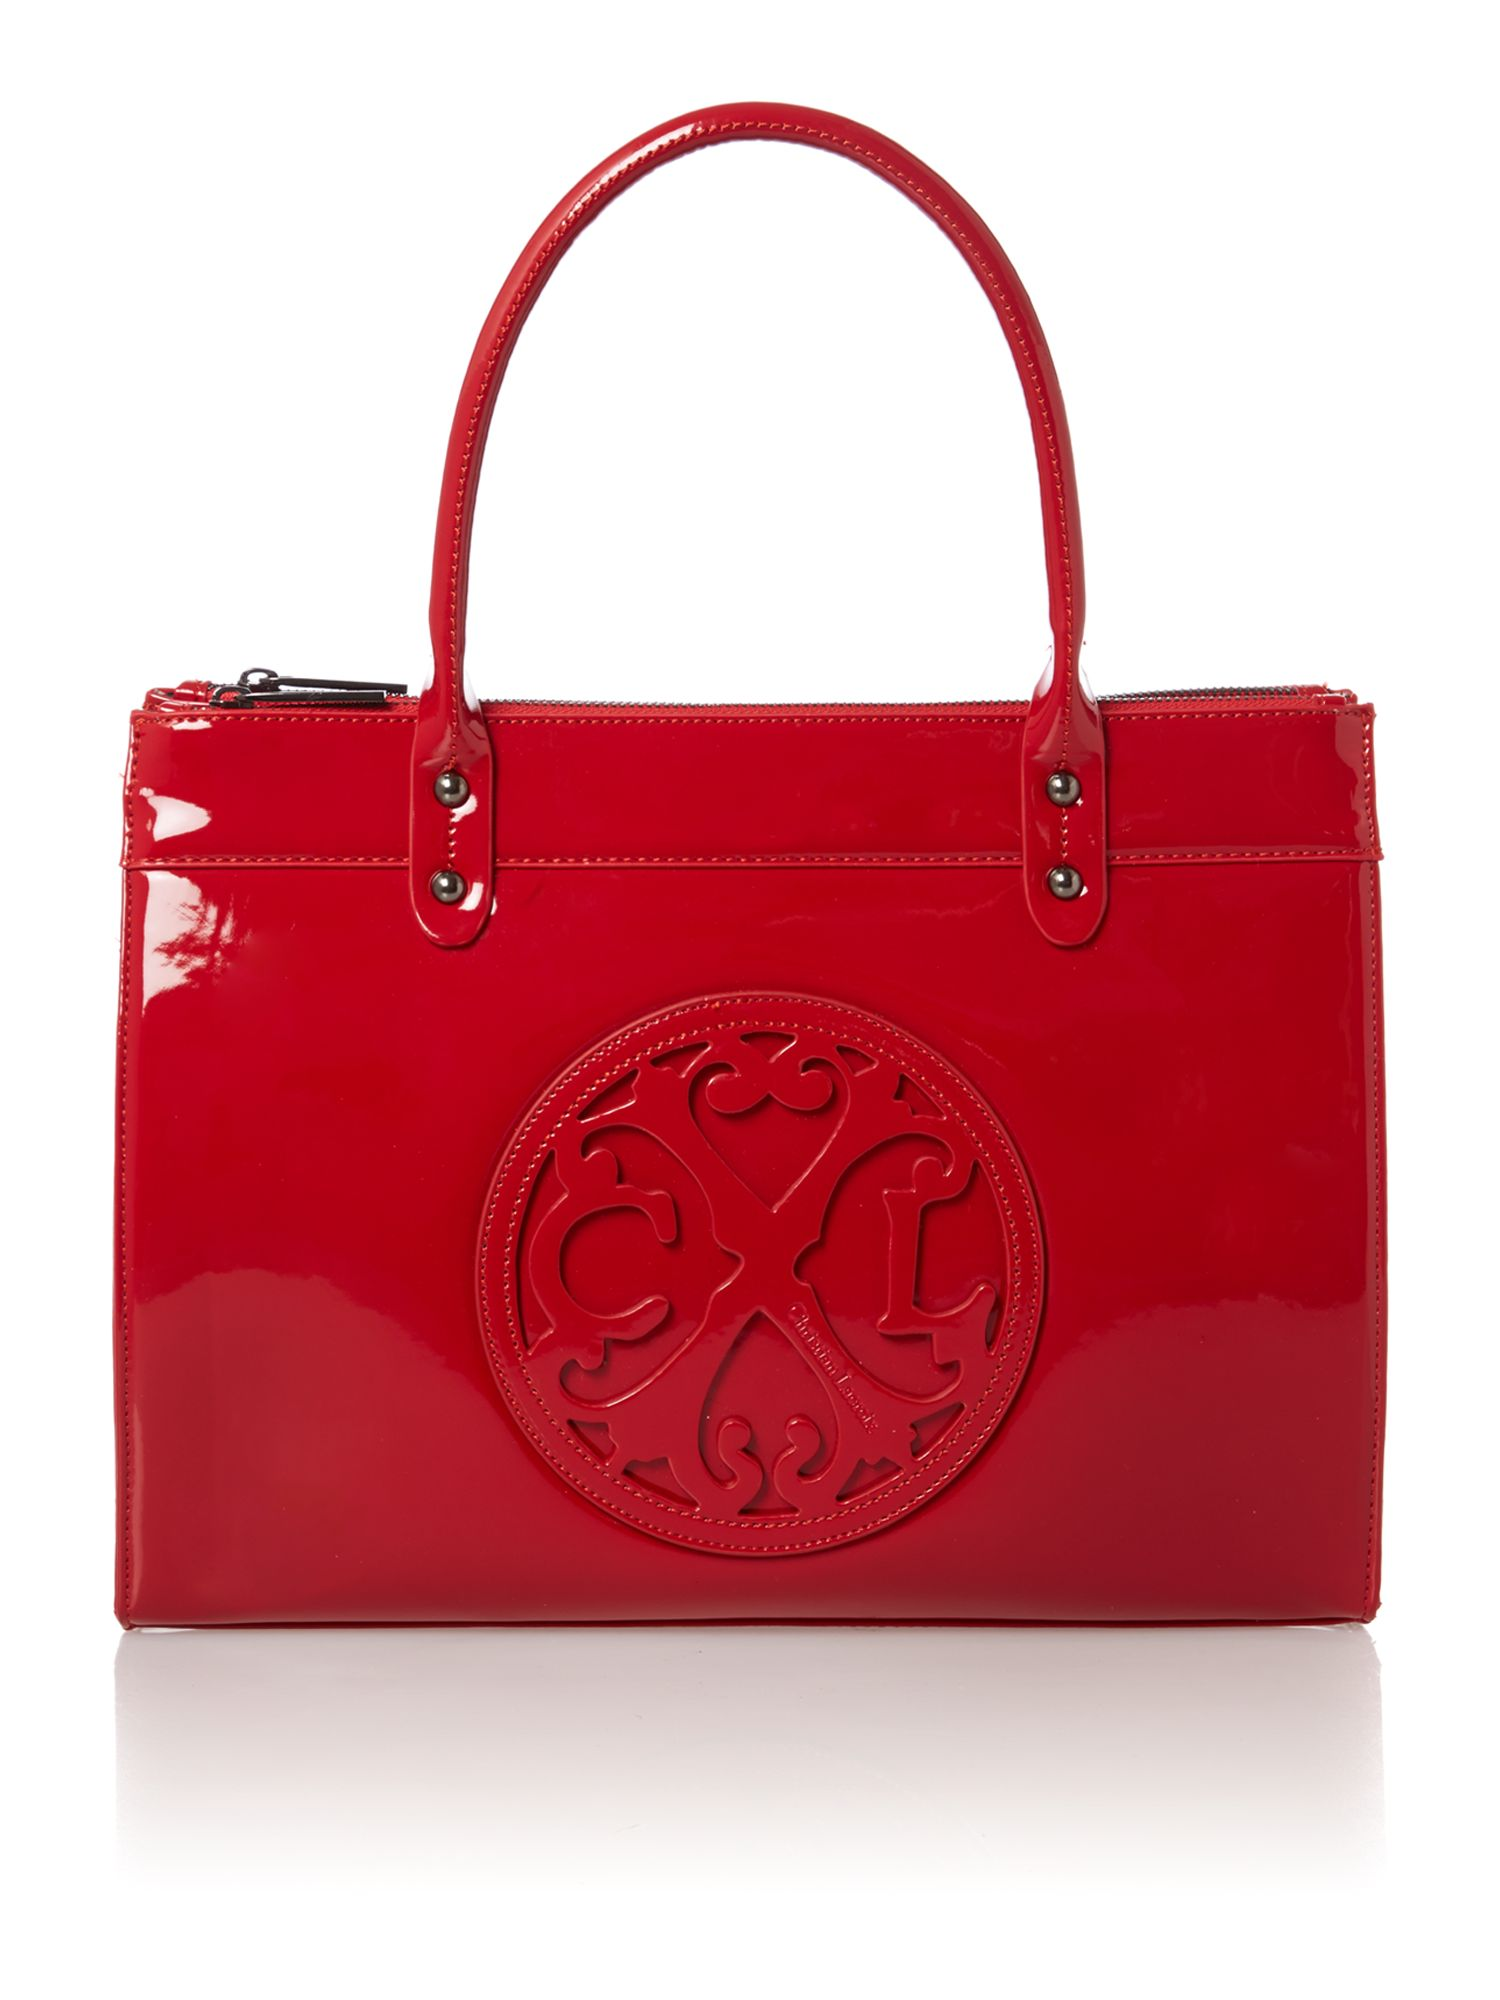 Jonc red patent tote bag